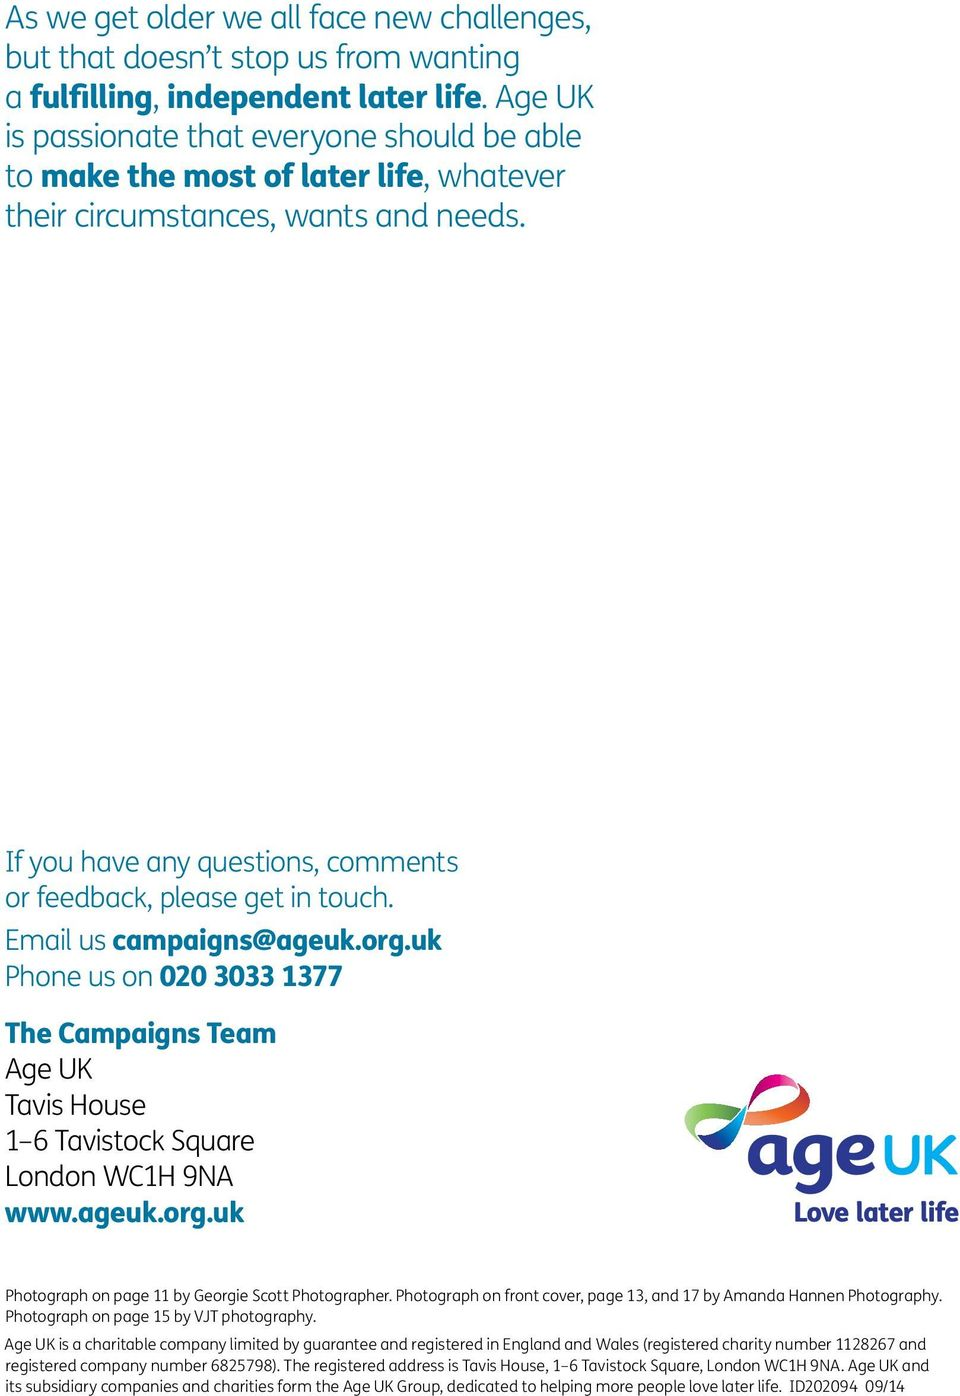 Email us campaigns@ageuk.org.uk Phone us on 020 3033 1377 The Campaigns Team Age UK Tavis House 1 6 Tavistock Square London WC1H 9NA www.ageuk.org.uk Photograph on page 11 by Georgie Scott Photographer.